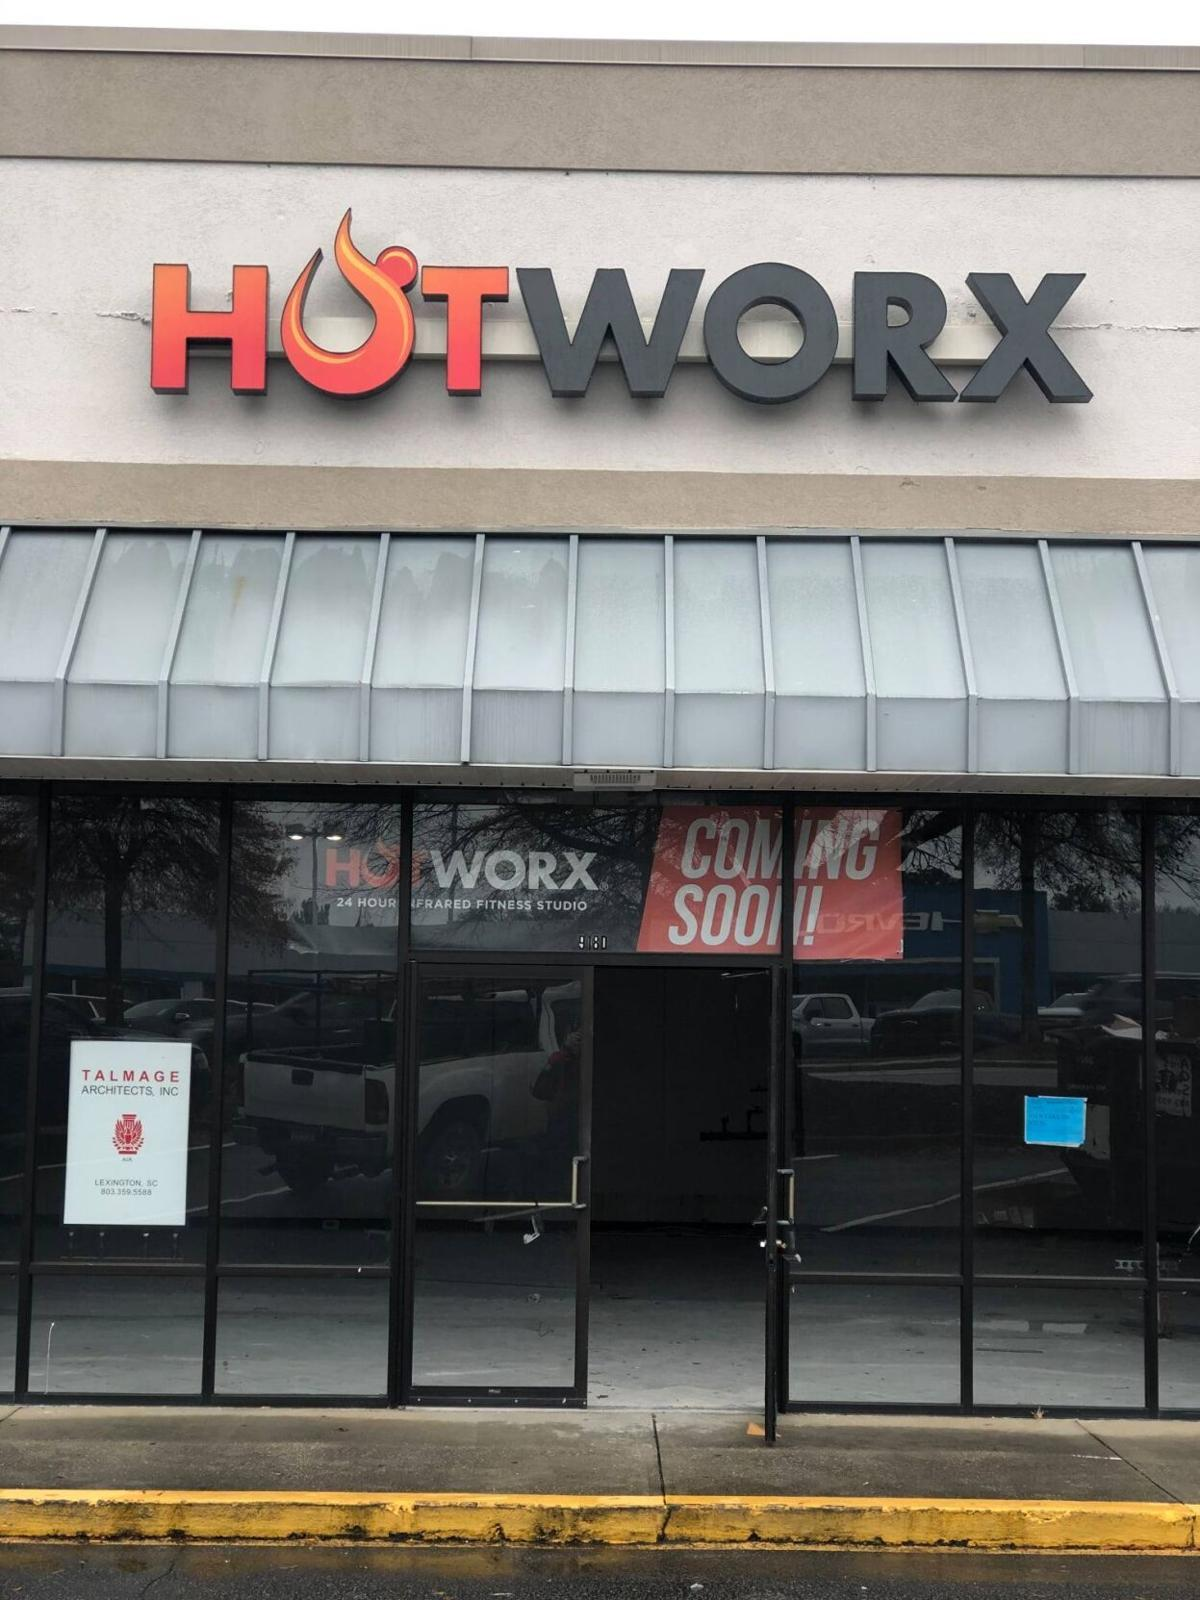 hotworx.jpg